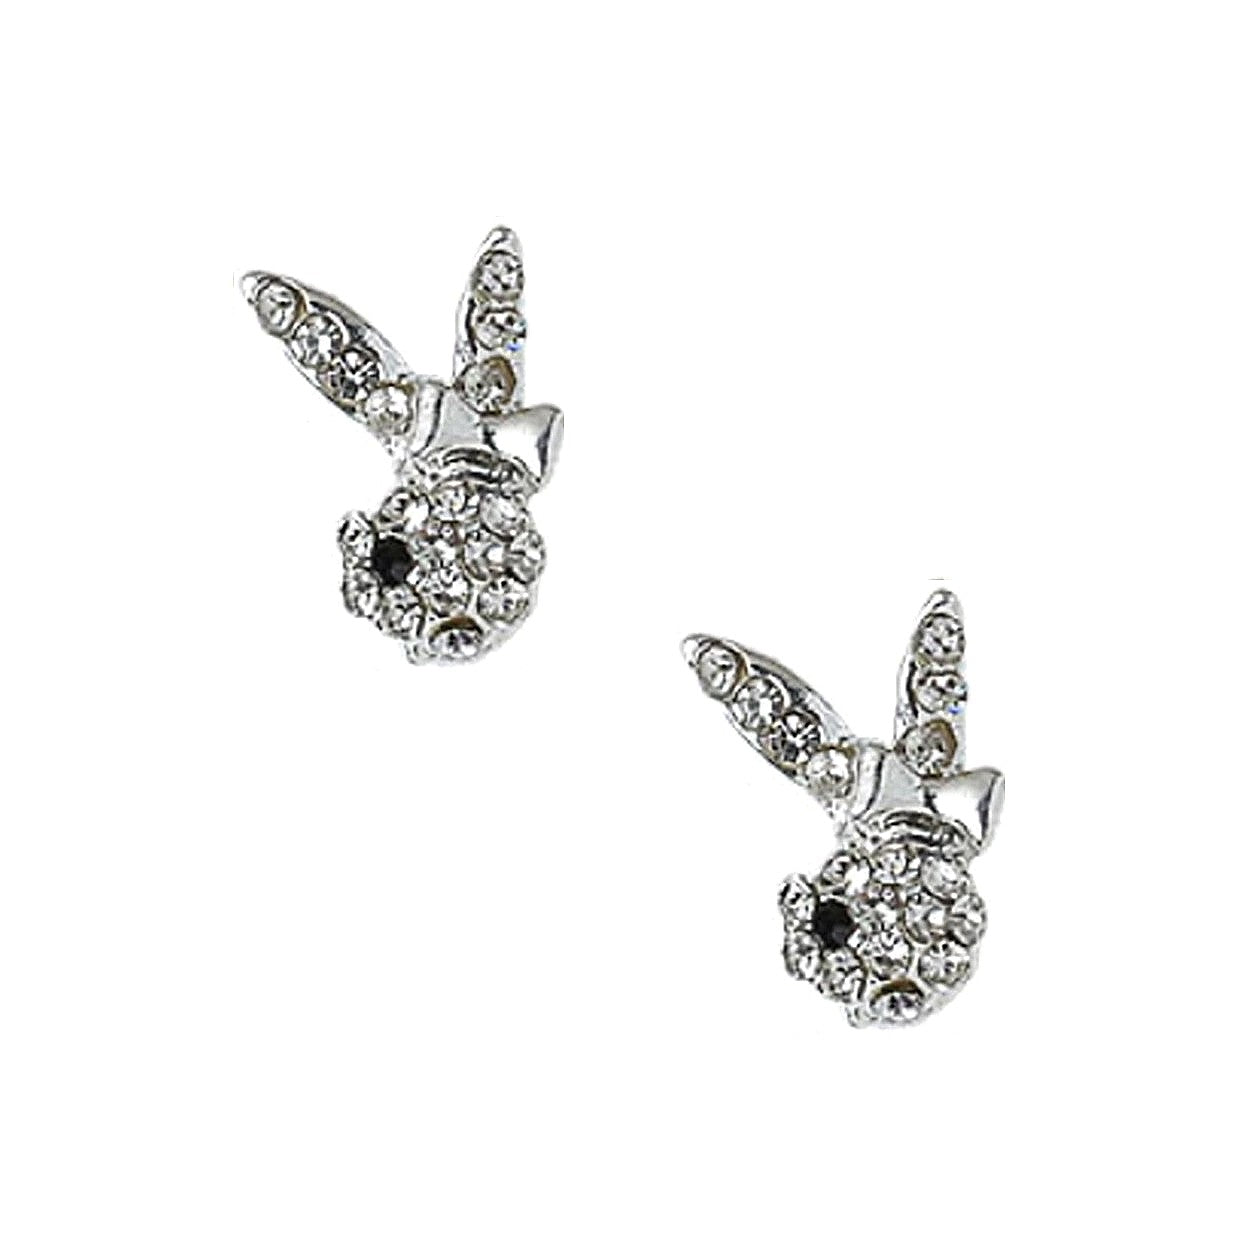 Bunny Charms Pair / Silver